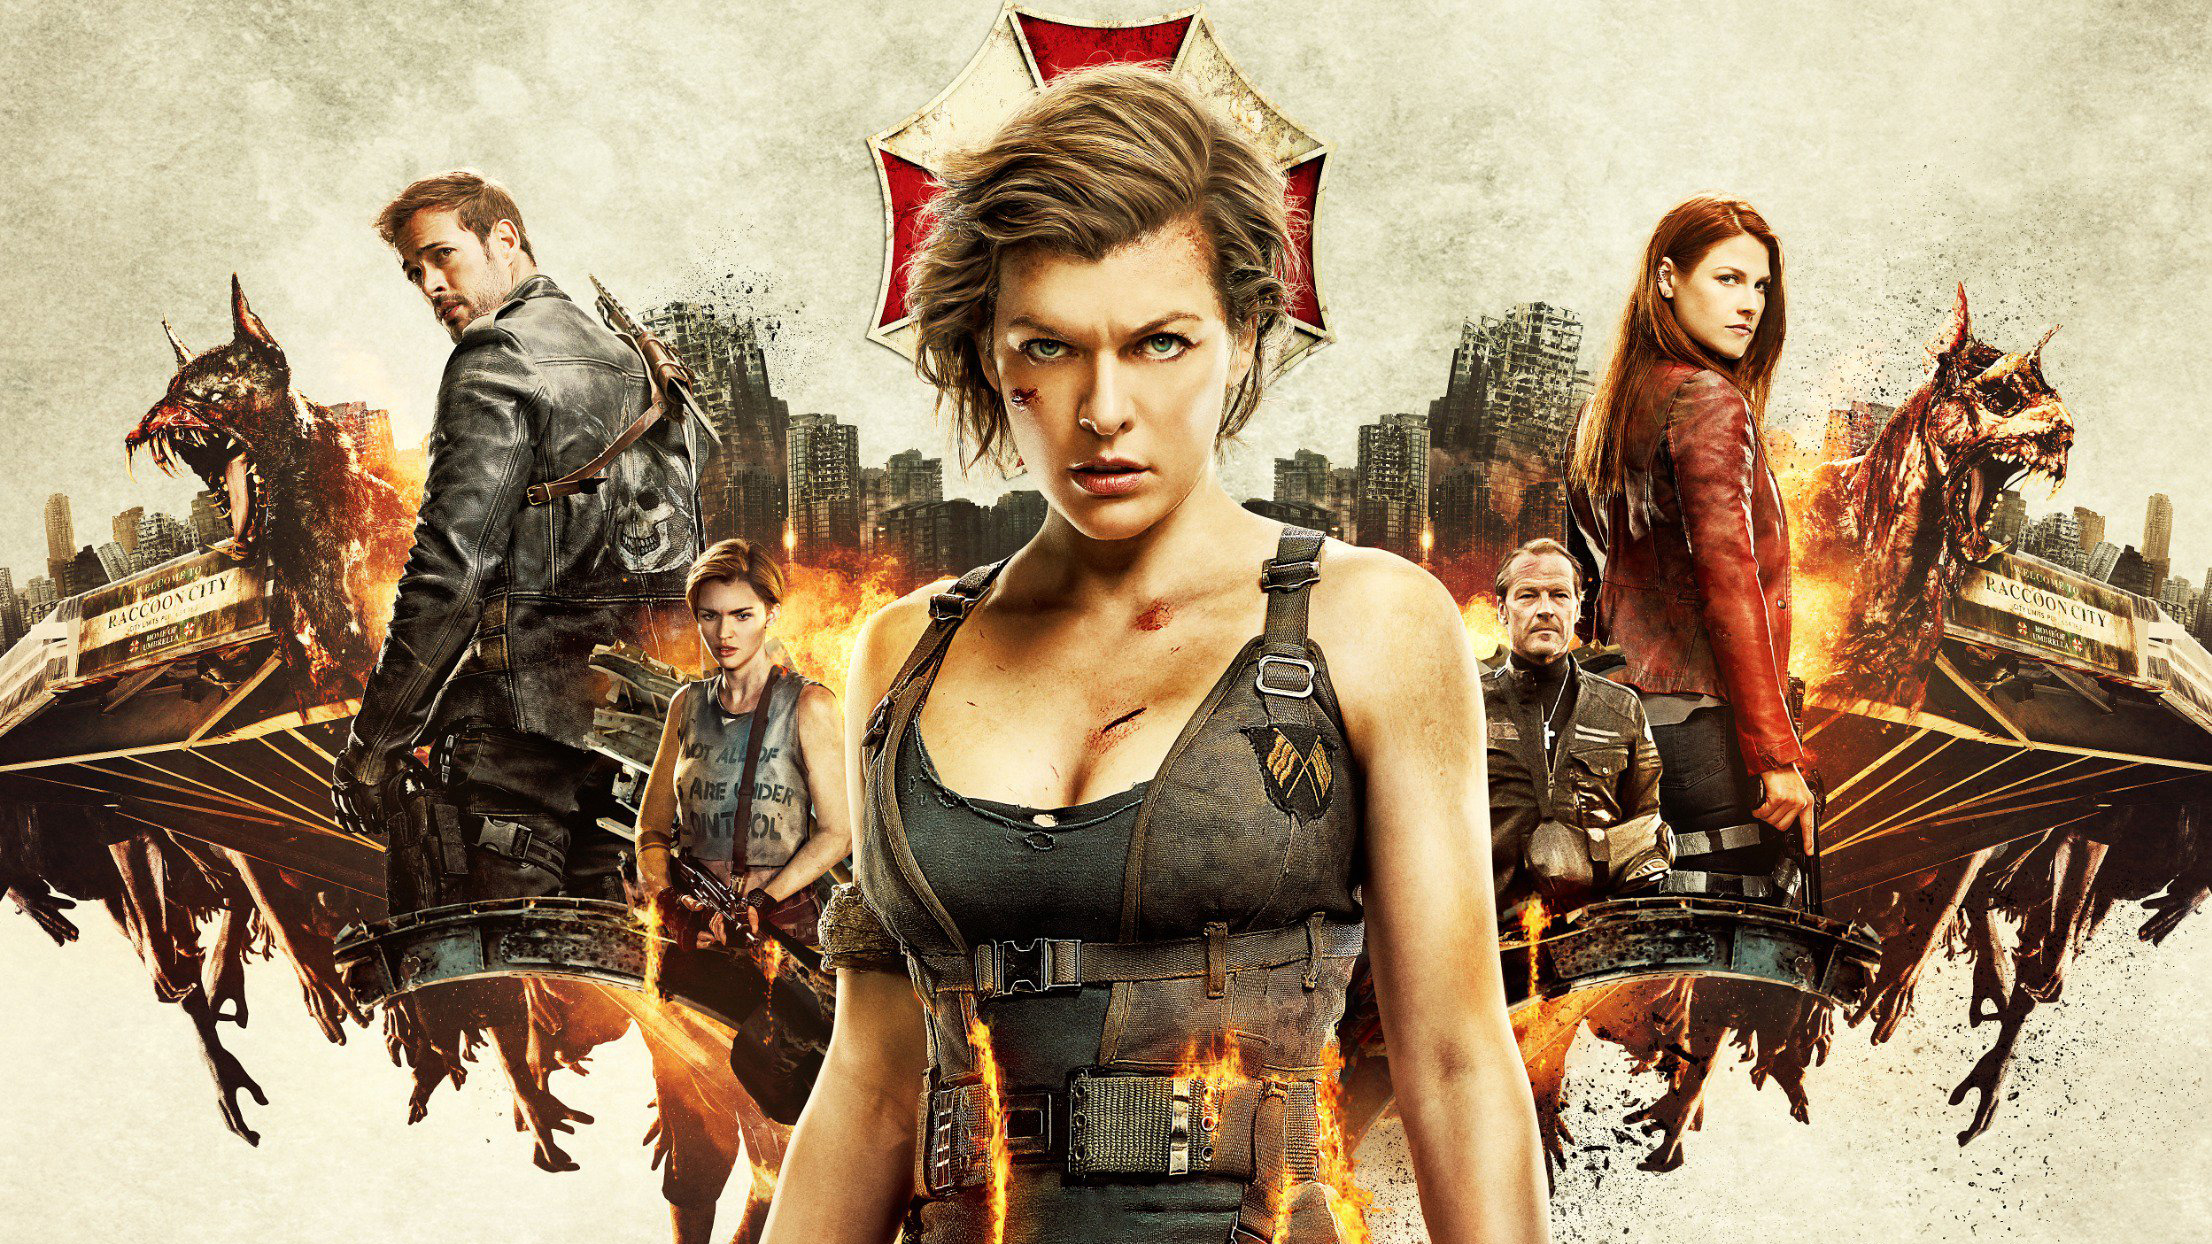 Ruby Rose Resident Evil The Final Chapter Wallpaper 11863: Resident Evil: The Final Chapter HD Wallpaper